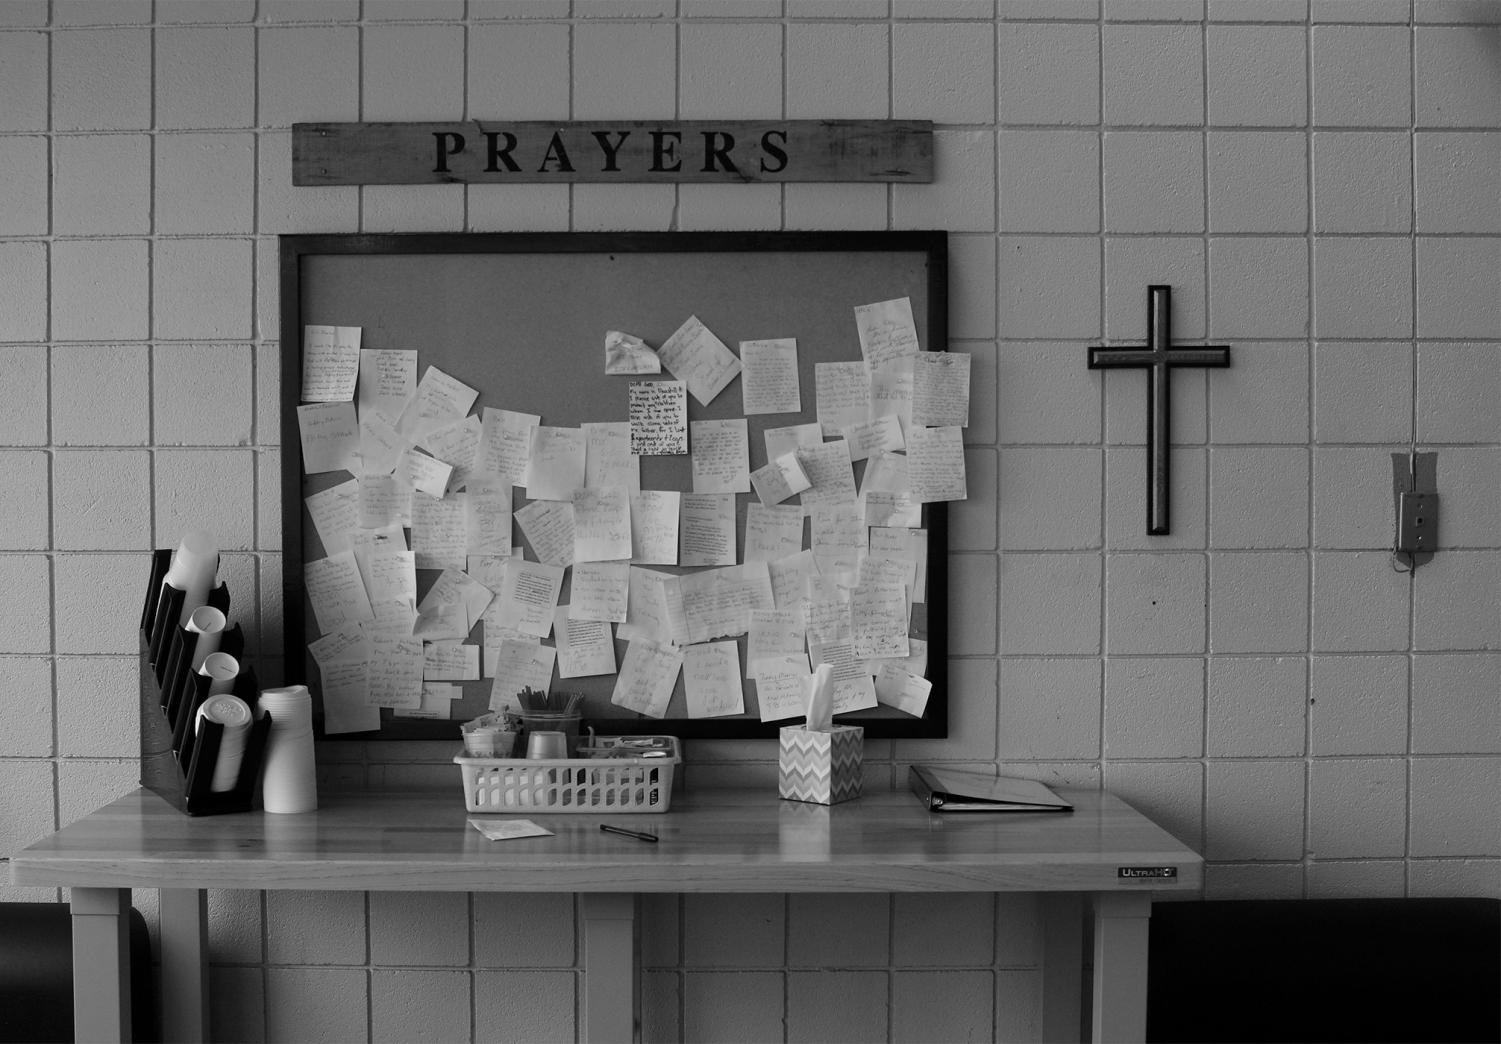 8th Street Pizza exists to build relationships with the community and the pizza is just secondary to that. This wall of prayers is part of the restaurant that shows the priority of helping people. Photo by Callie Manias.